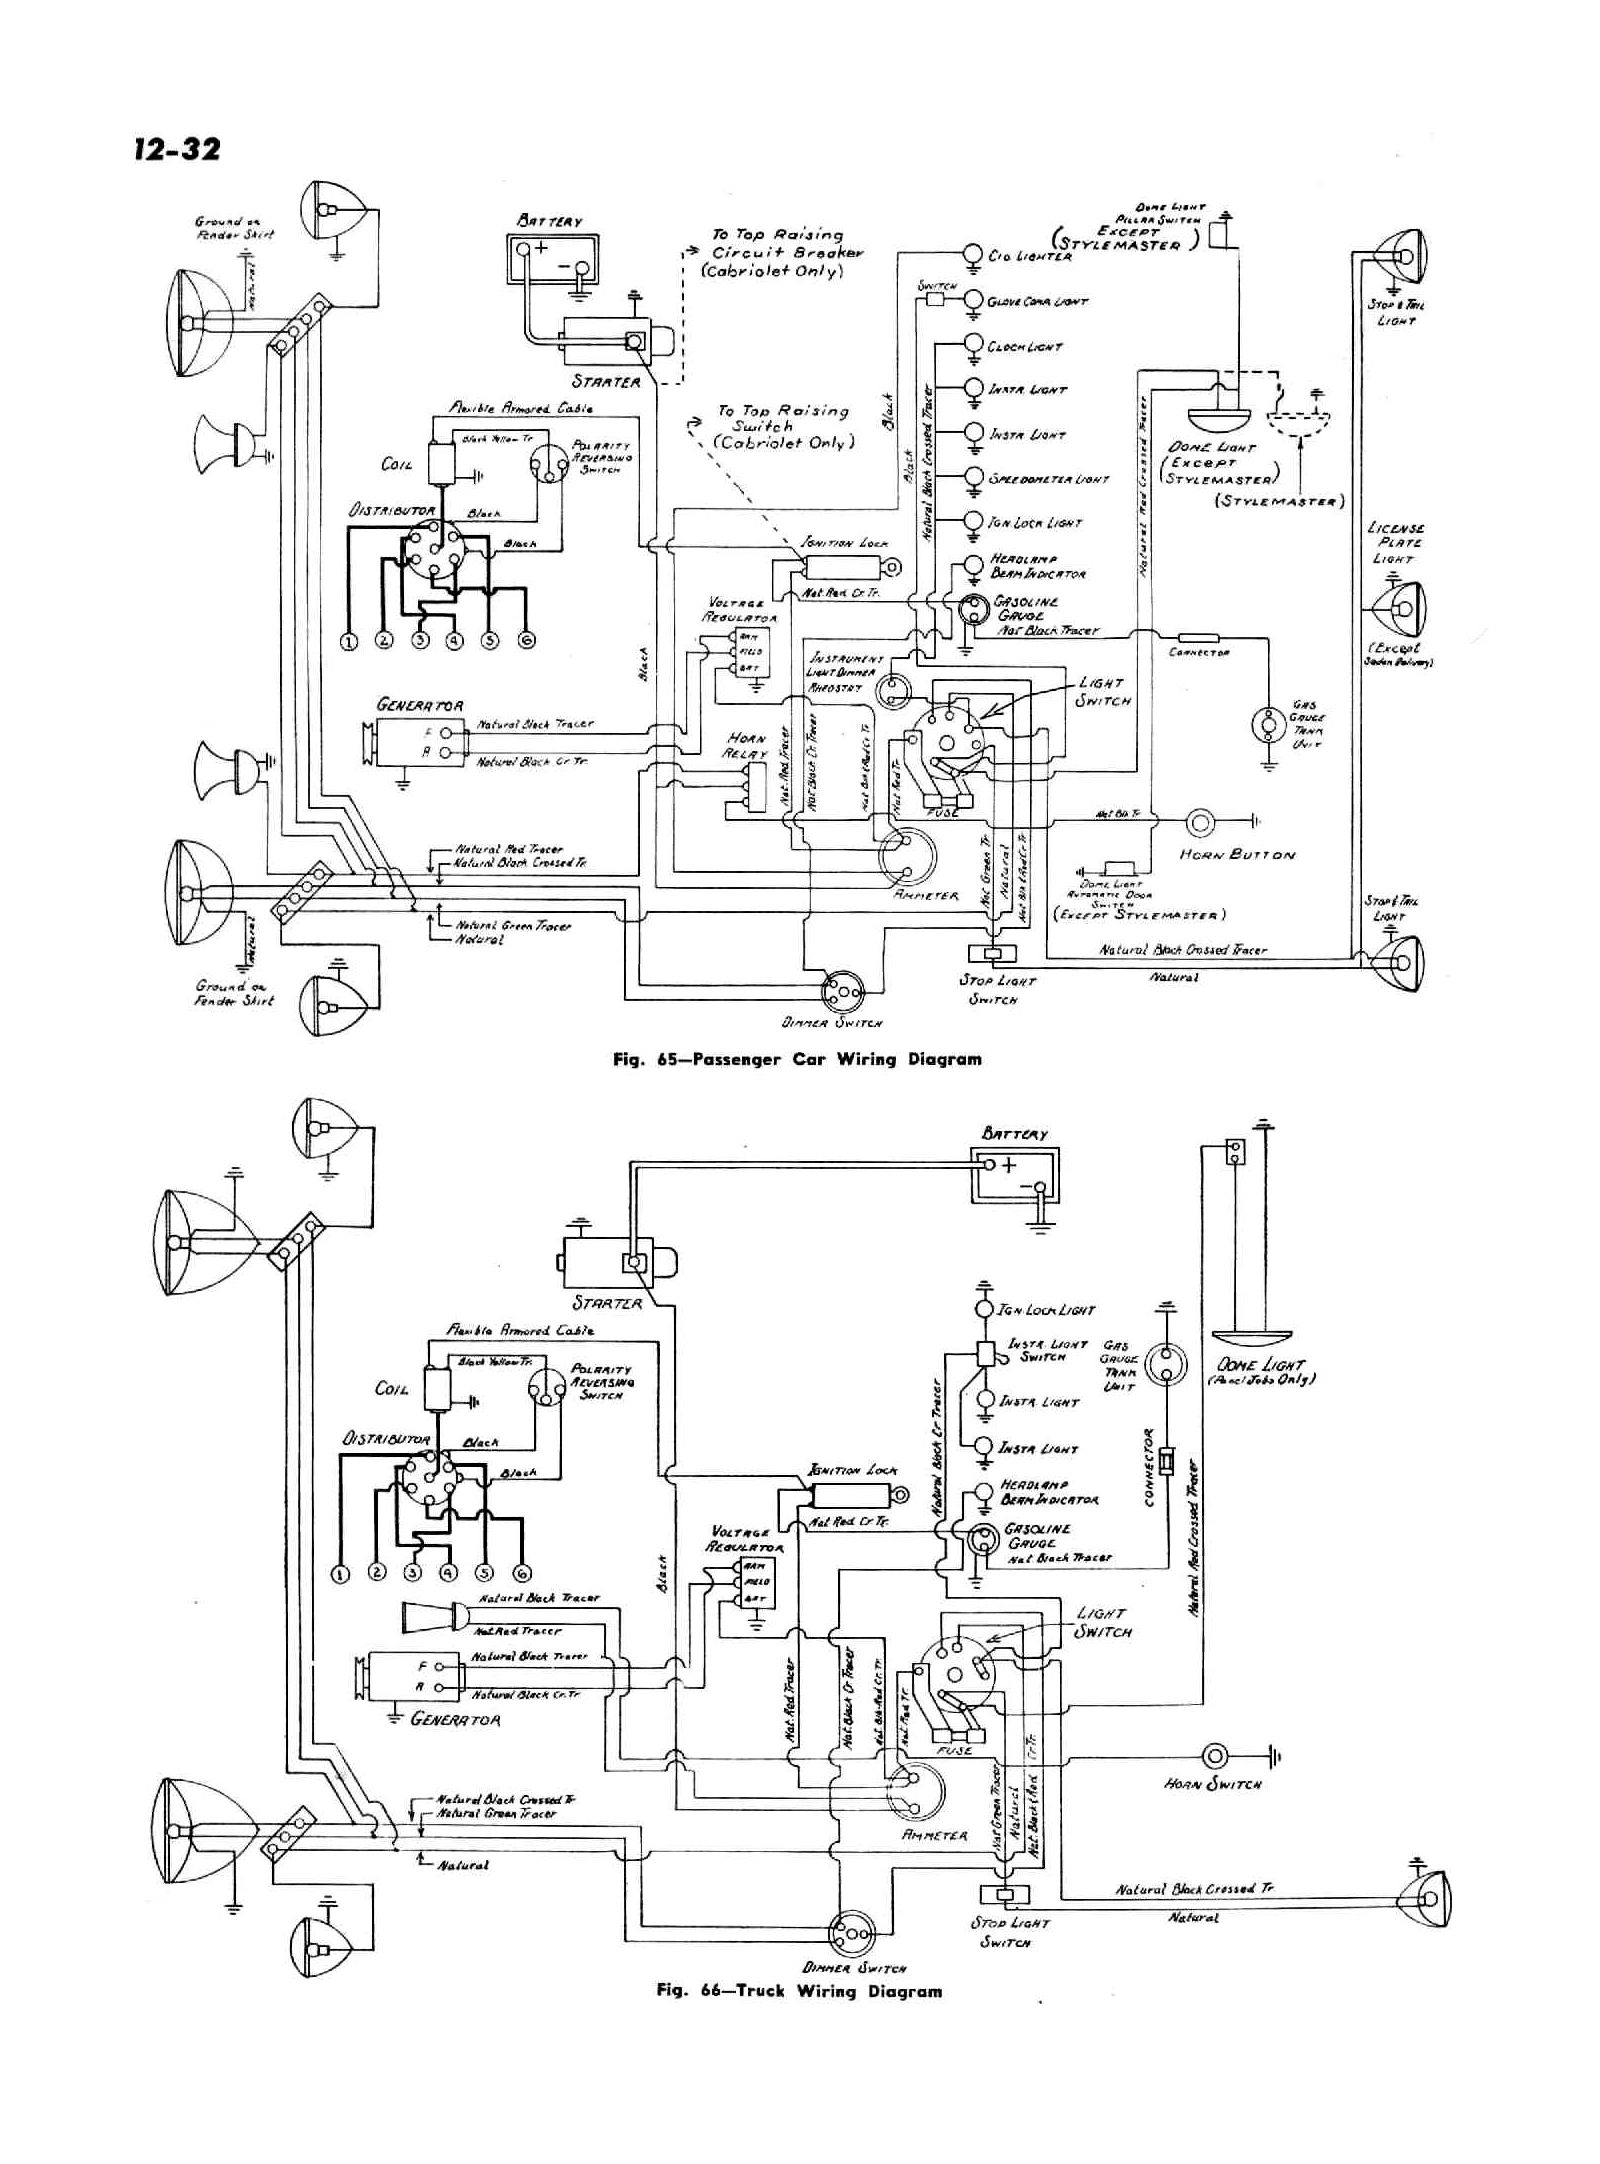 chevy wiring diagrams with 6 volt generator wiring diagram?resize\\\\\\\\\\\\\\\\\\\\\\\\\\\\\\\\\\\\\\\\\\\\\\\\\\\\\\\\\\\\\\\=665%2C899\\\\\\\\\\\\\\\\\\\\\\\\\\\\\\\\\\\\\\\\\\\\\\\\\\\\\\\\\\\\\\\&ssl\\\\\\\\\\\\\\\\\\\\\\\\\\\\\\\\\\\\\\\\\\\\\\\\\\\\\\\\\\\\\\\=1 1951 chevy styleline deluxe wiring harness wiring diagram 1951 chevy truck wiring diagram at soozxer.org